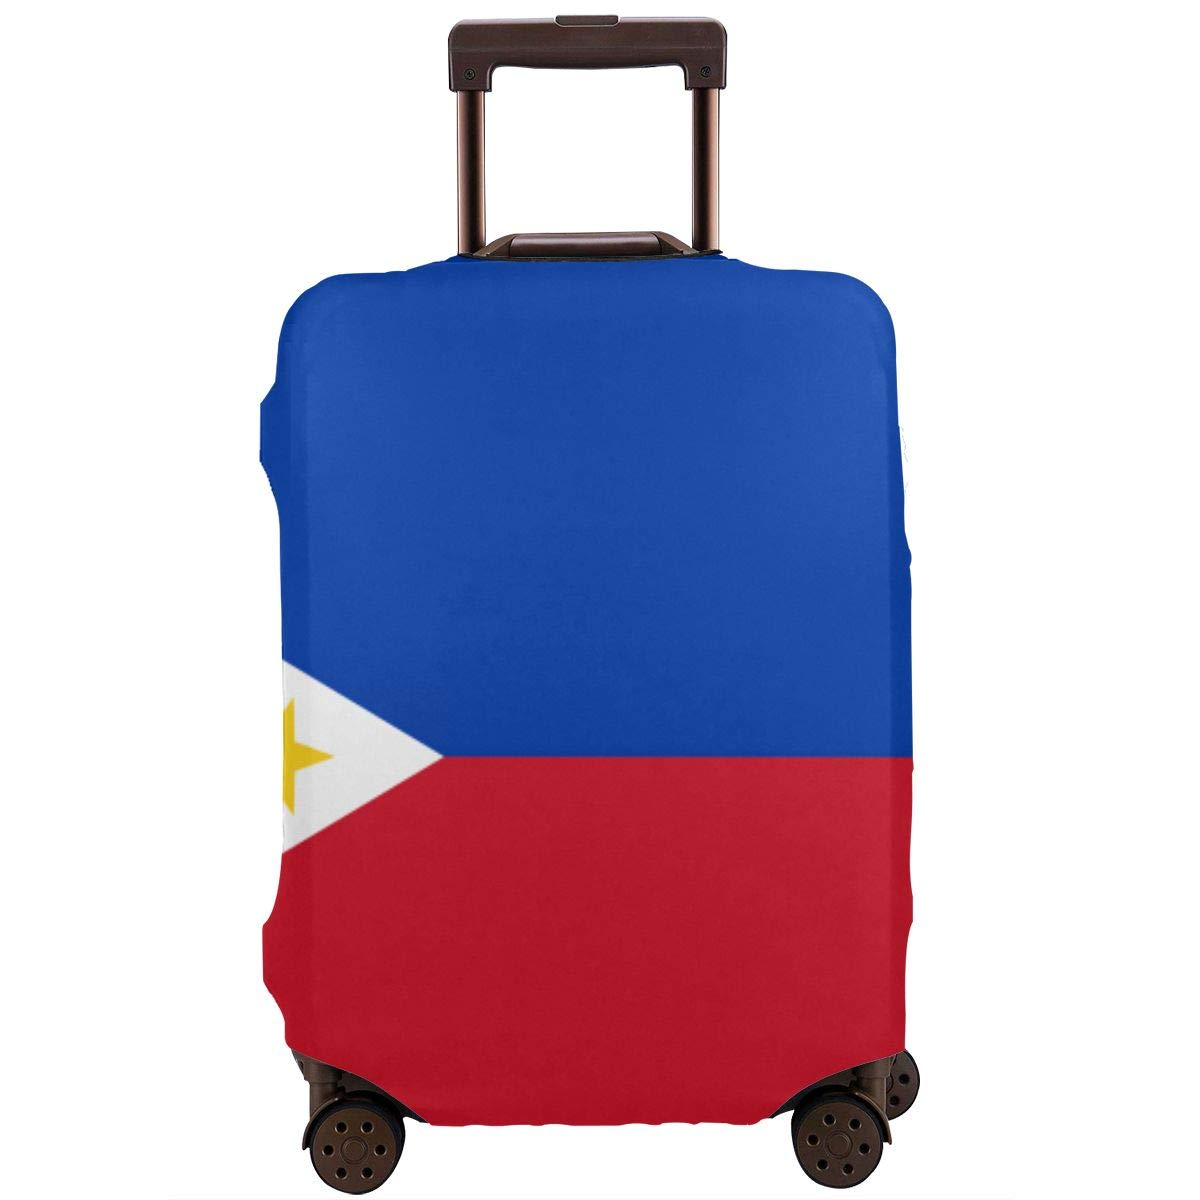 Philippines Flag Sun XL Luggage Cover Elastic Travel Suitcase Protector Fits 18-32 Inch